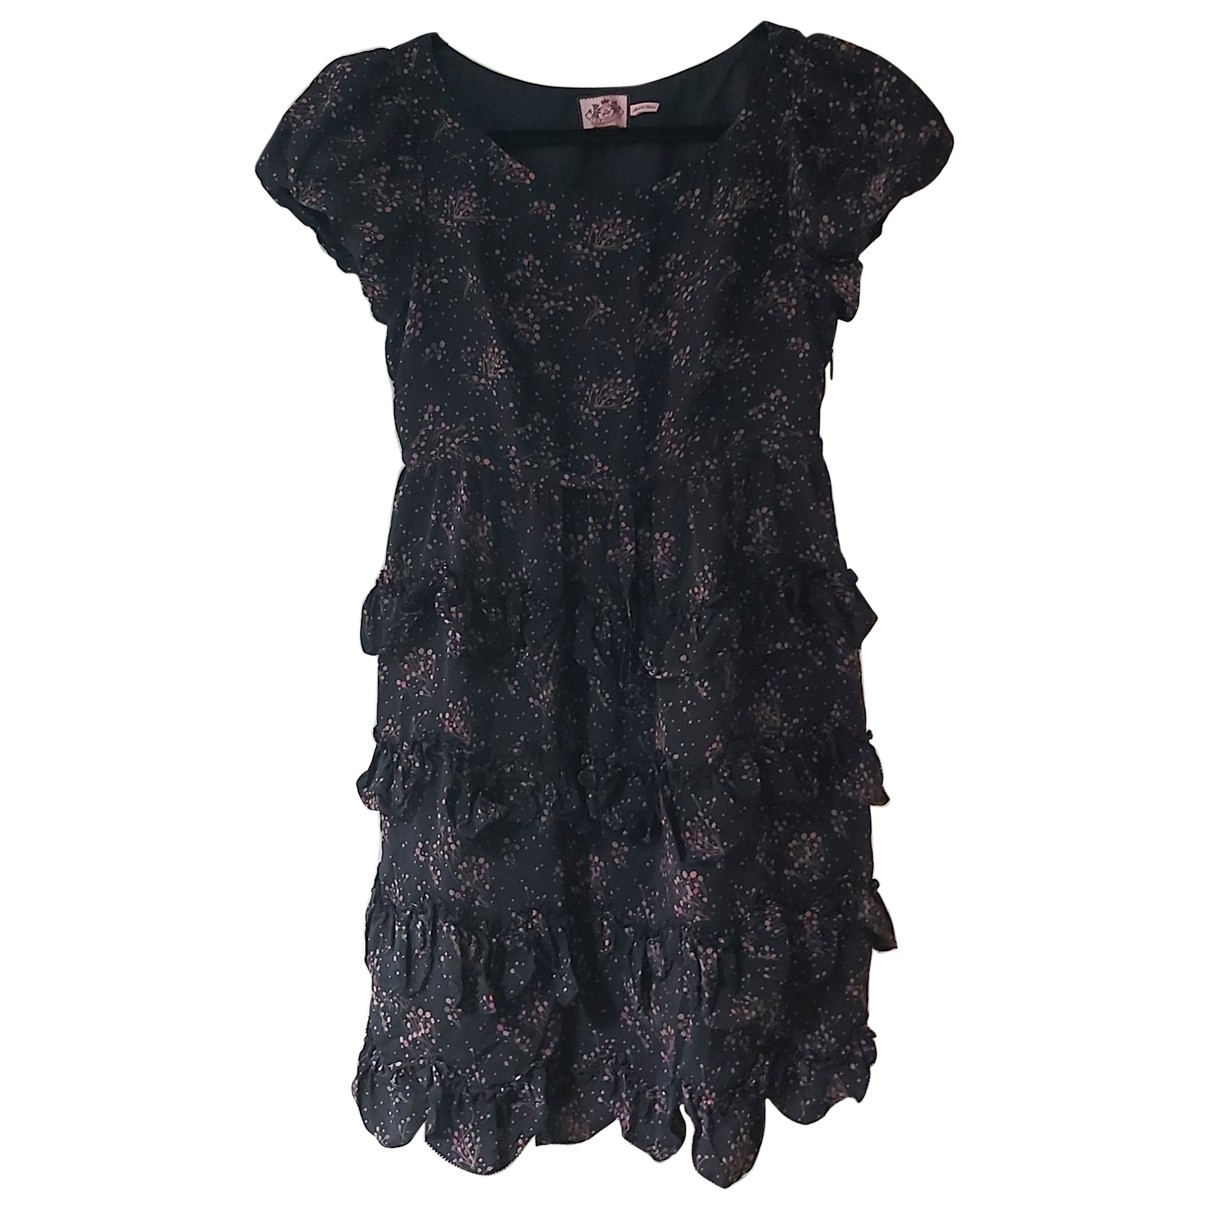 Juicy Couture \N Kleid in  Schwarz Seide